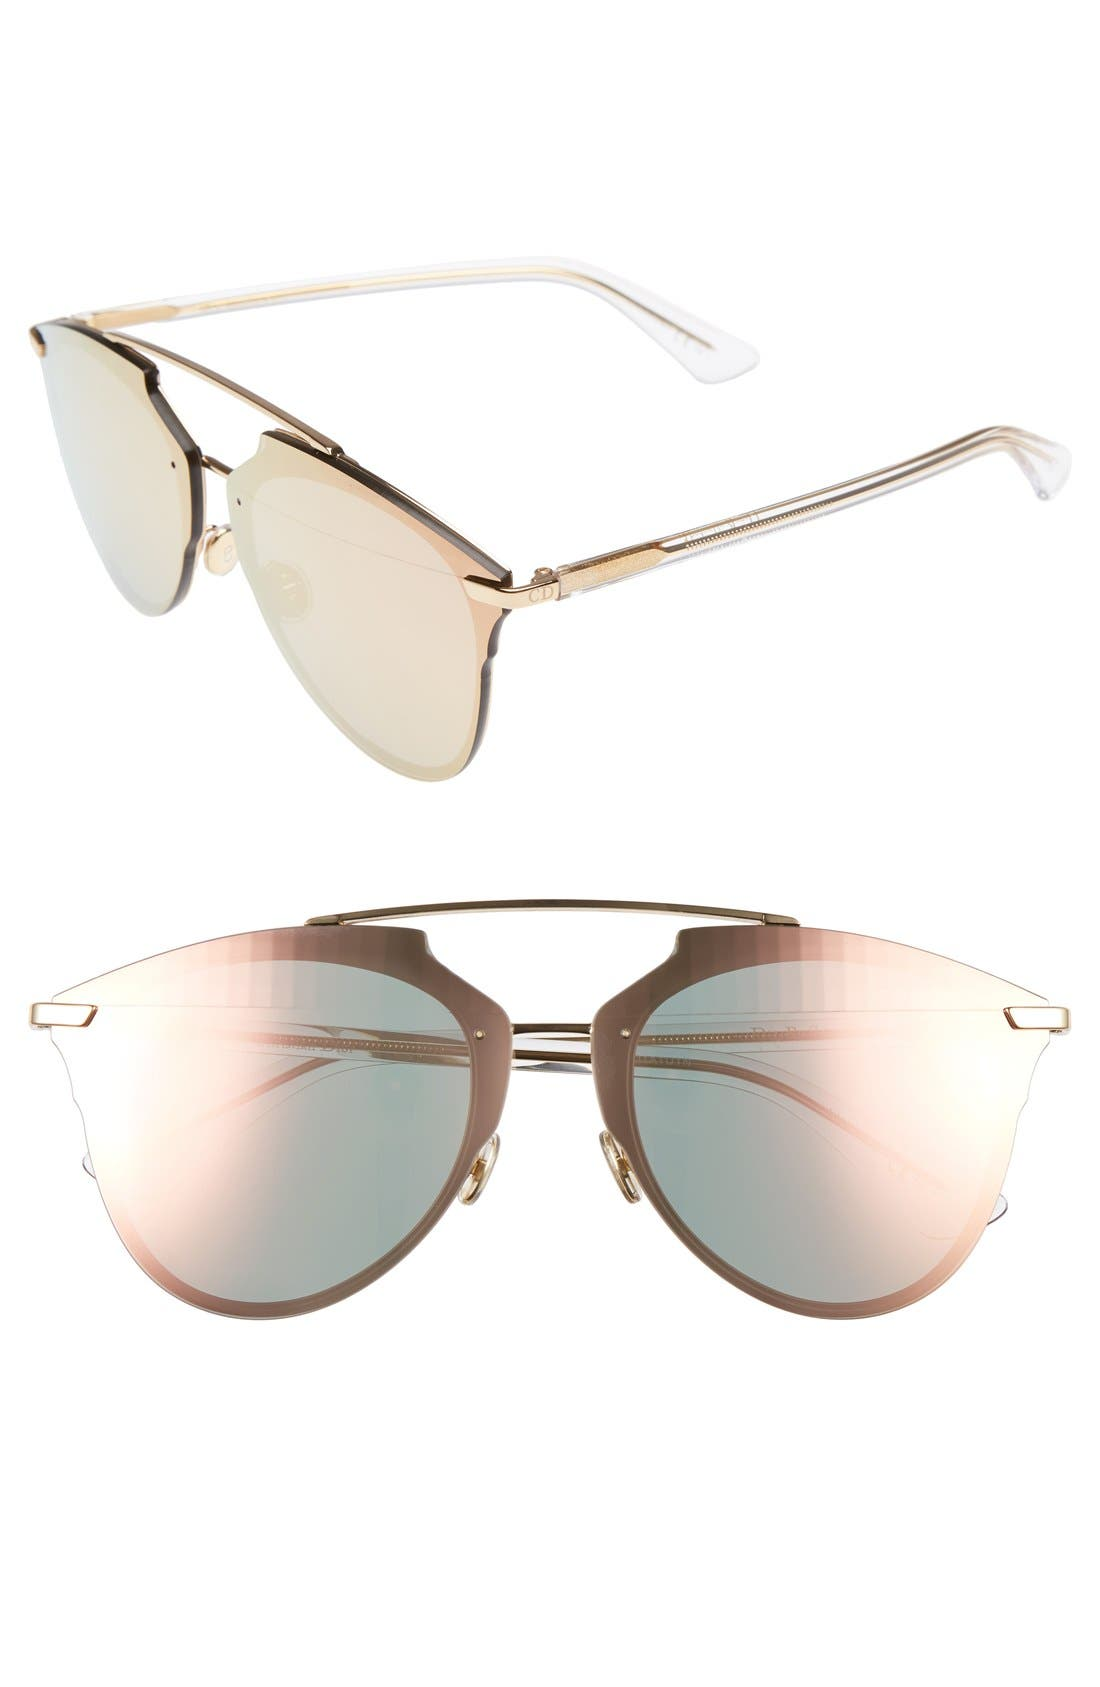 Reflected Prism 63mm Oversize Mirrored Brow Bar Sunglasses,                             Main thumbnail 7, color,